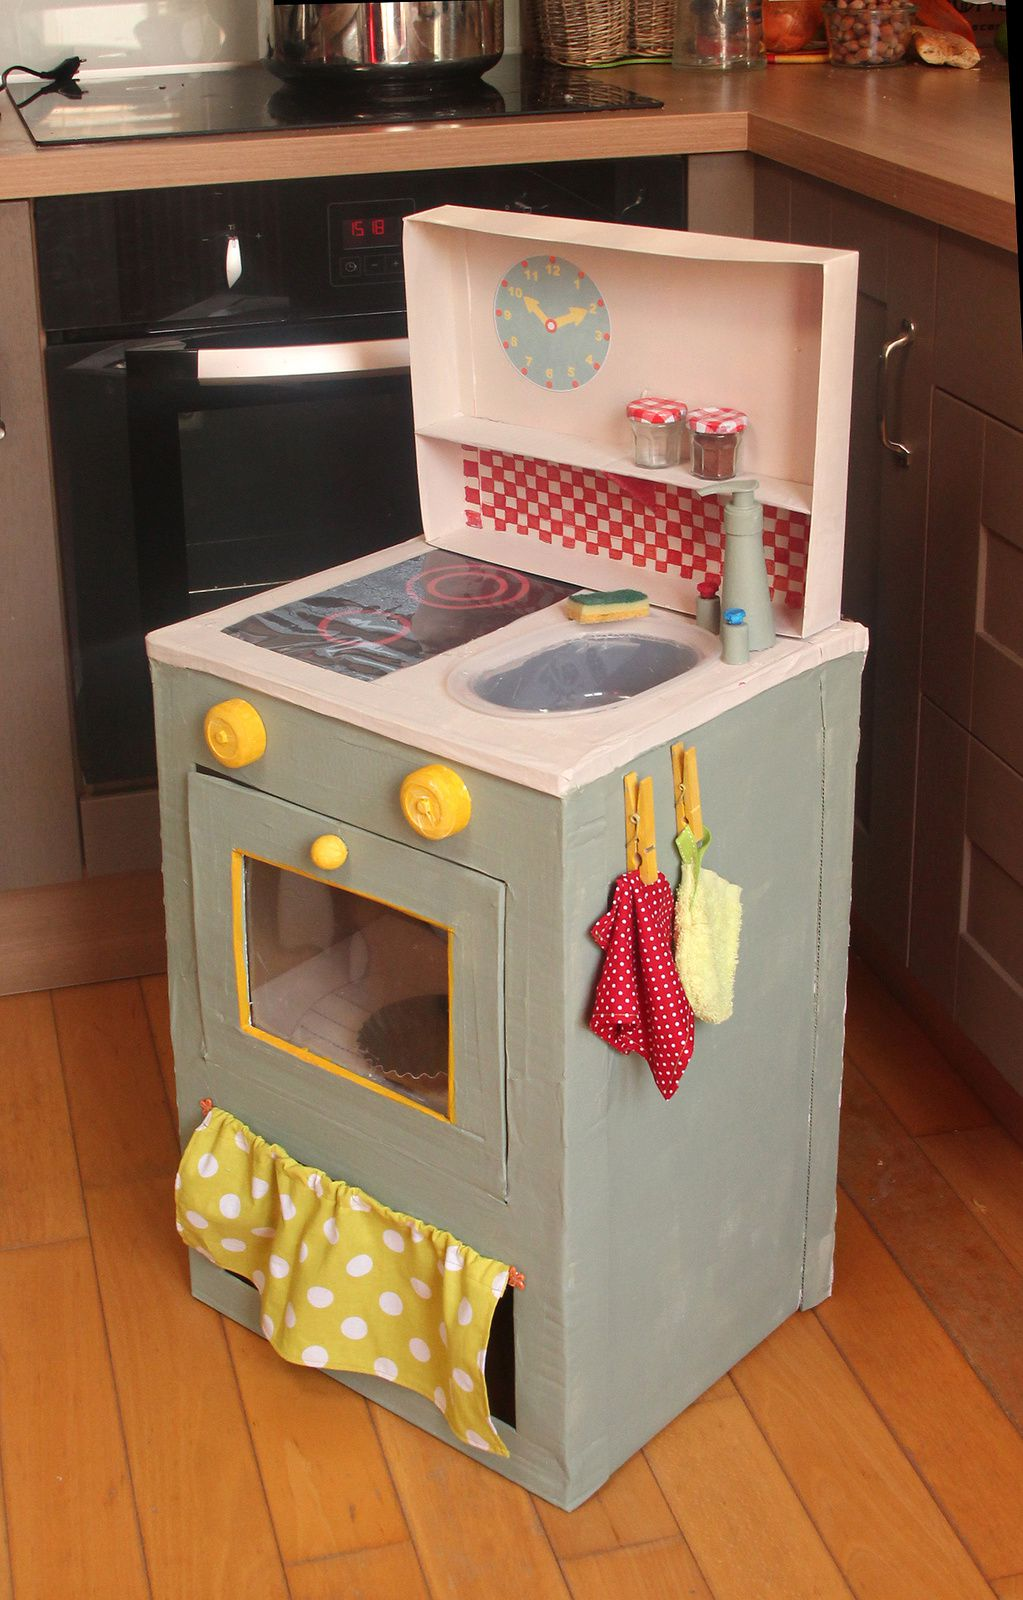 cuisine en carton pour enfants cardboard children kitchen le blog2val. Black Bedroom Furniture Sets. Home Design Ideas